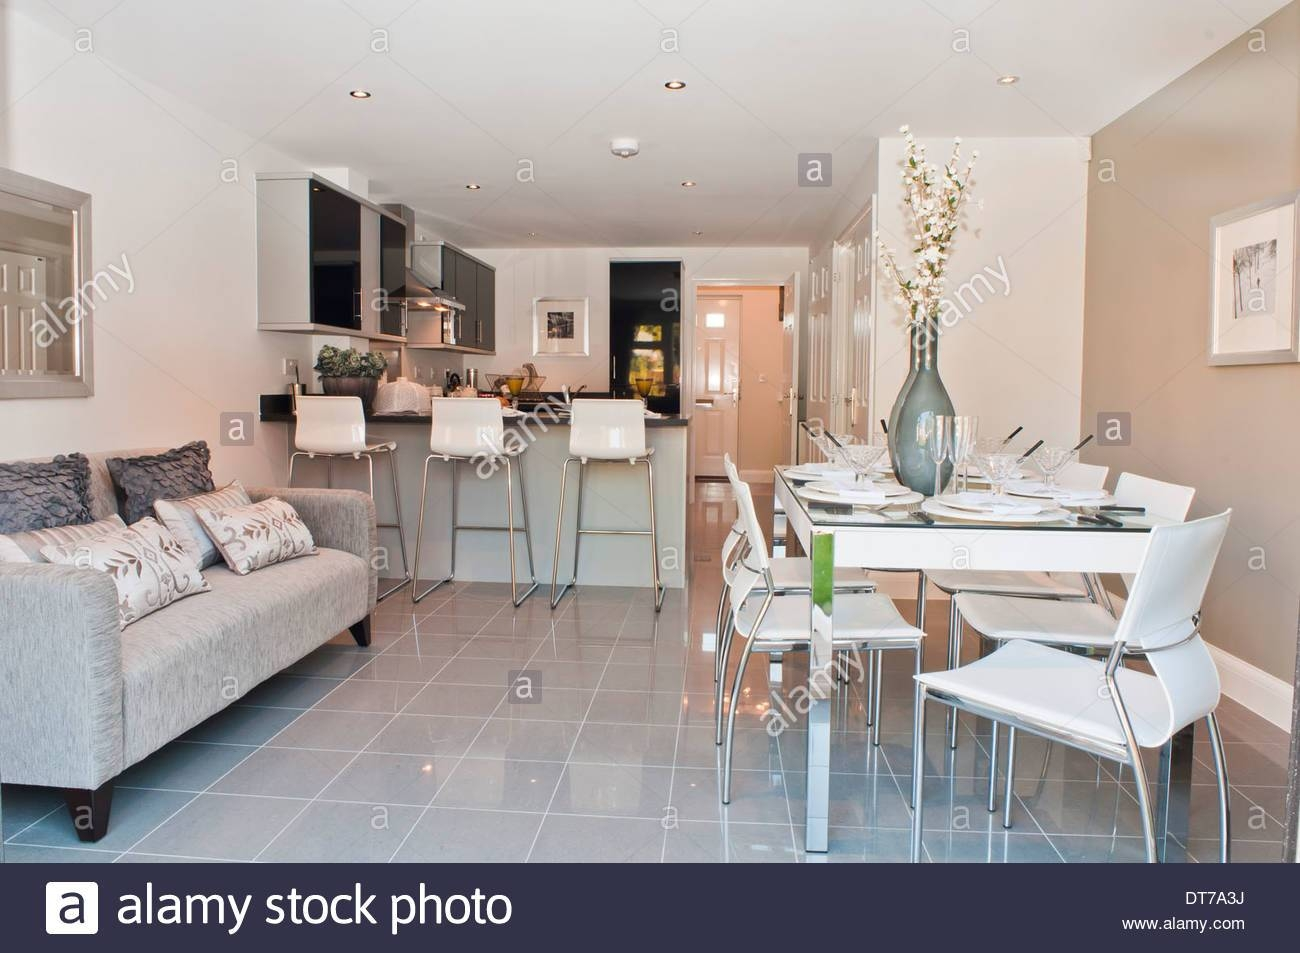 Show Home Kitchen / Diner With Sofa Stock Photo, Royalty Free inside Sofas For Kitchen Diner (Image 22 of 30)